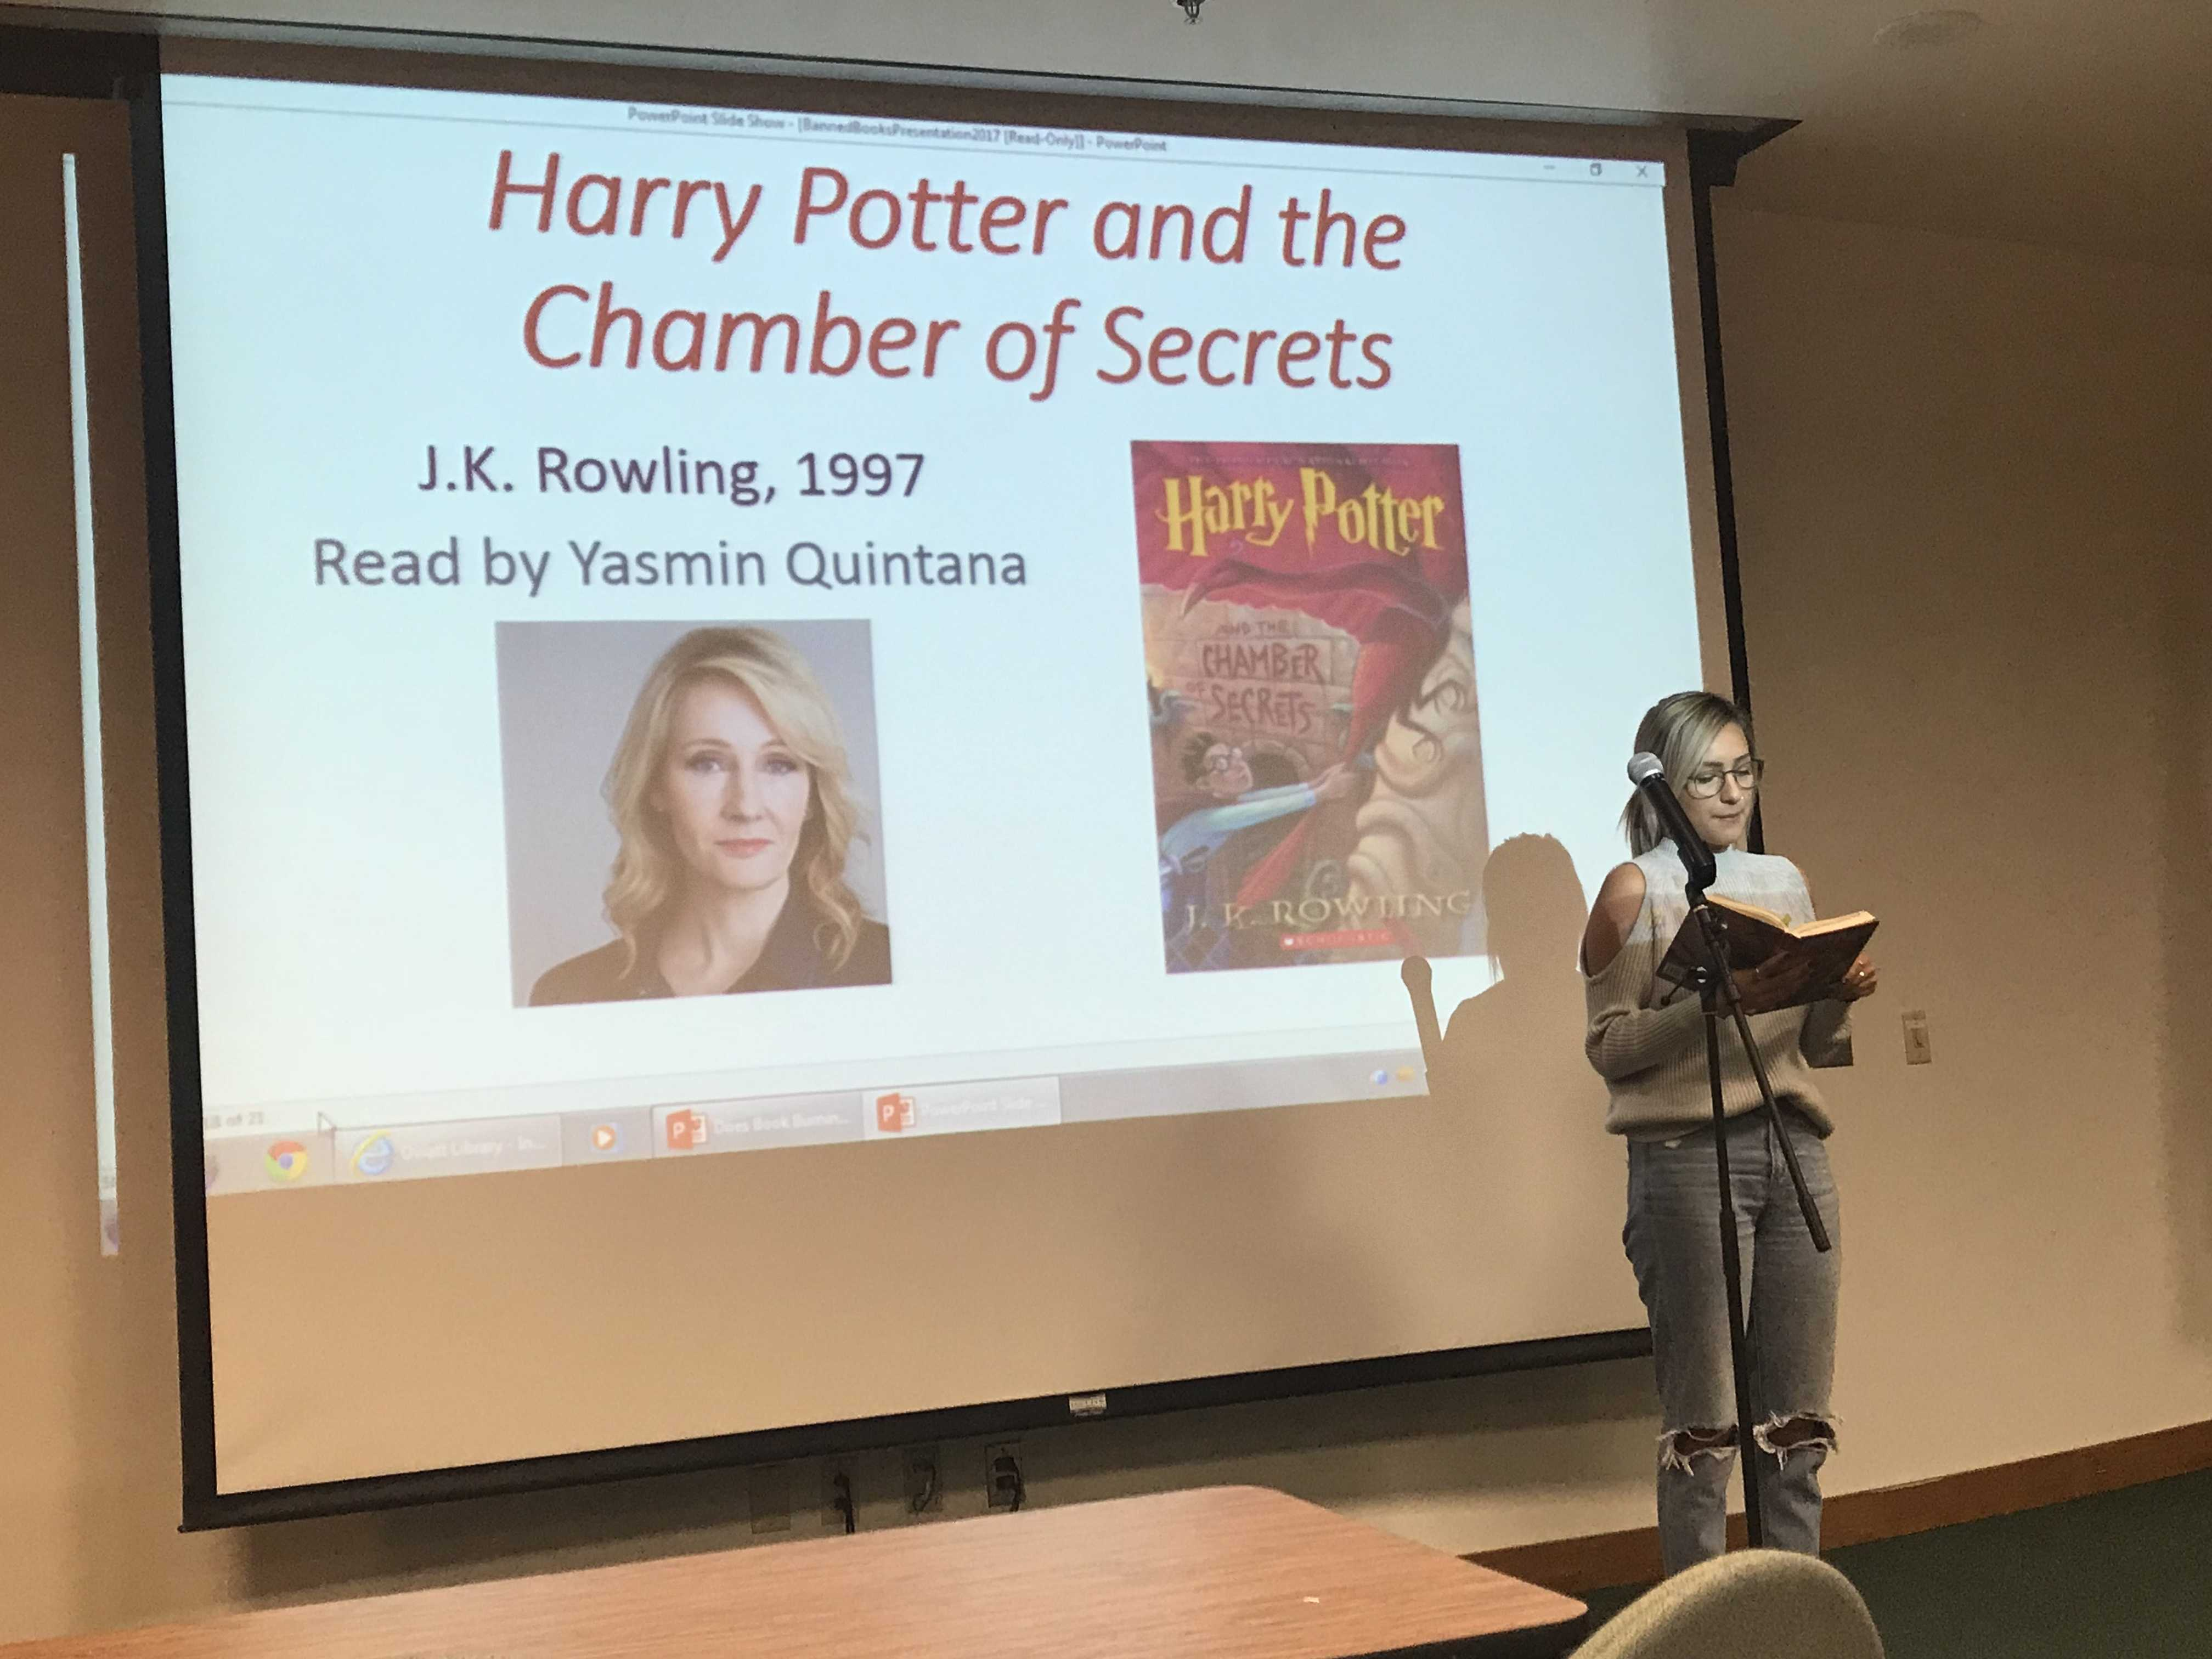 Yasmin Quintana reads an excerpt from Harry Potter and the Chamber of Secrets.